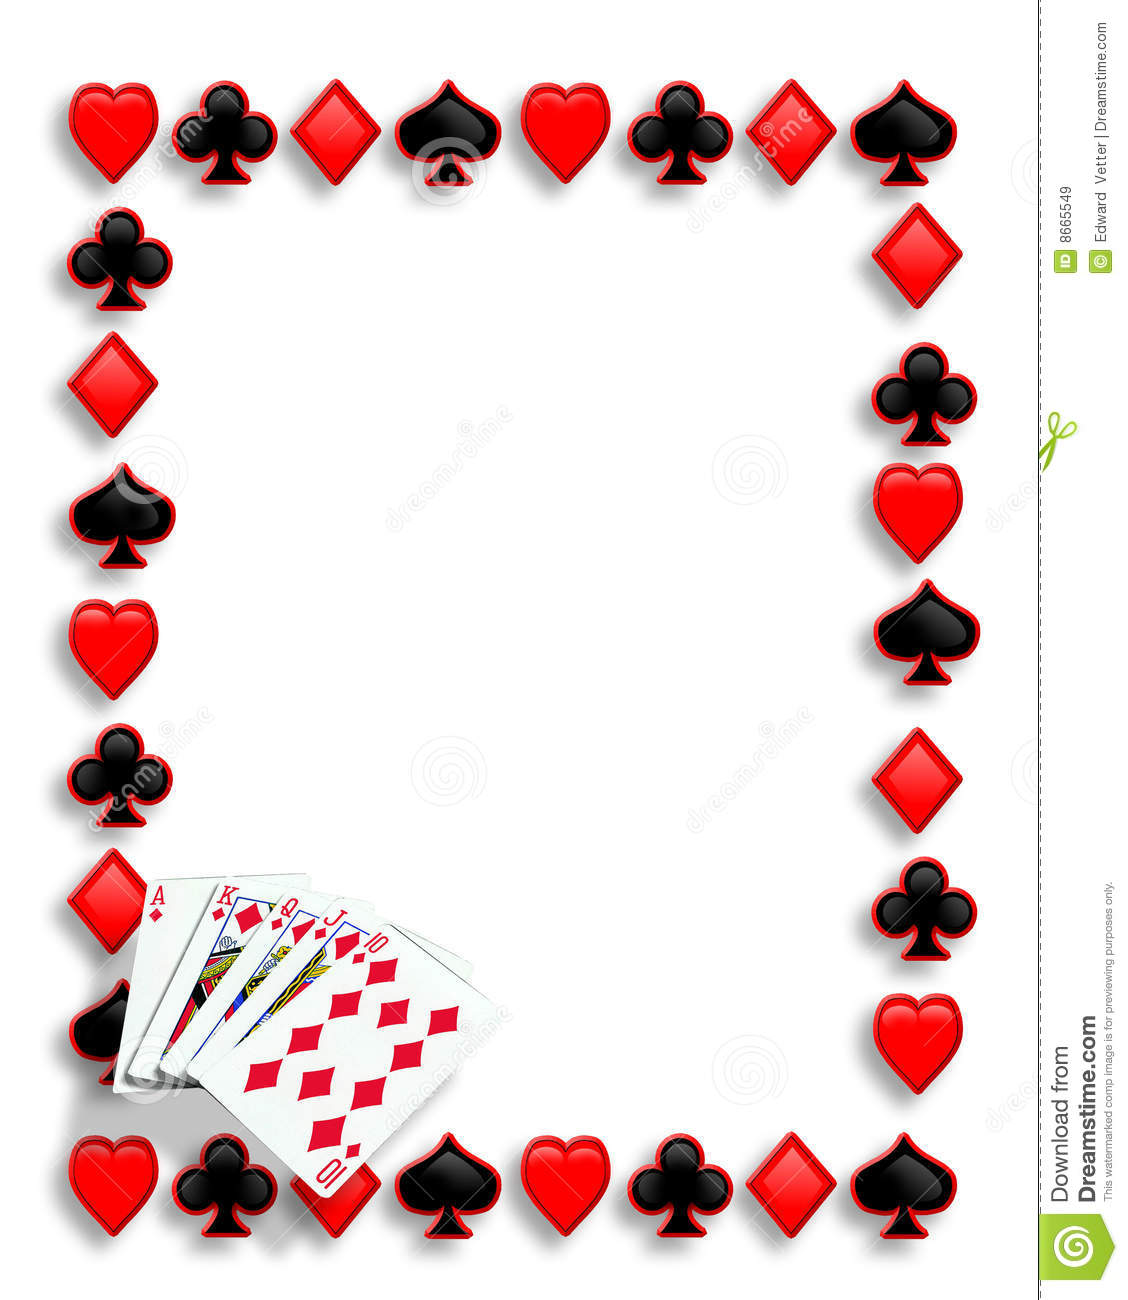 graphic regarding Printable Playing Card Stock named Playing cards Poker Border Royal Flush Inventory Instance